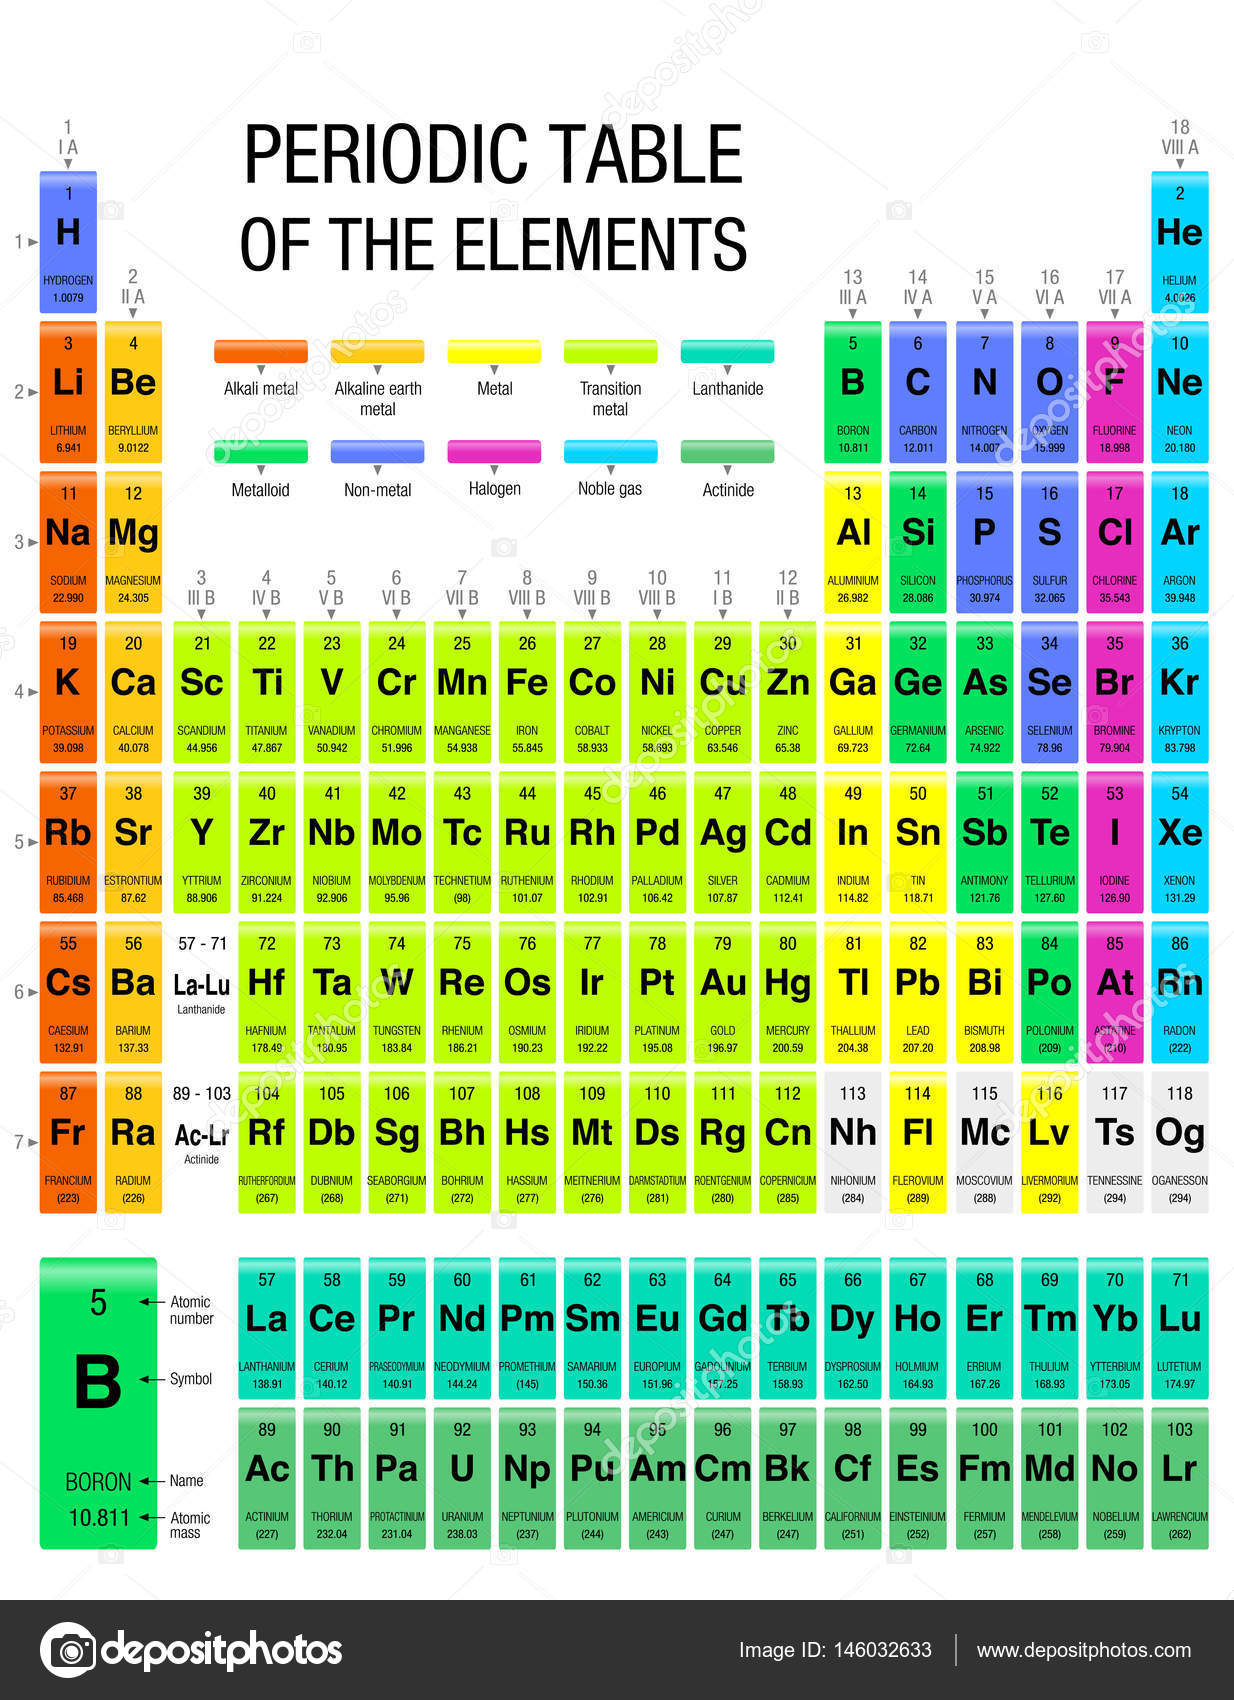 Periodic table of elements with the 4 new elements included on periodic table of elements with the 4 new elements included on november 28 2016 by the iupac size 216 x 28 cm vector image vector by alejomiranda urtaz Images